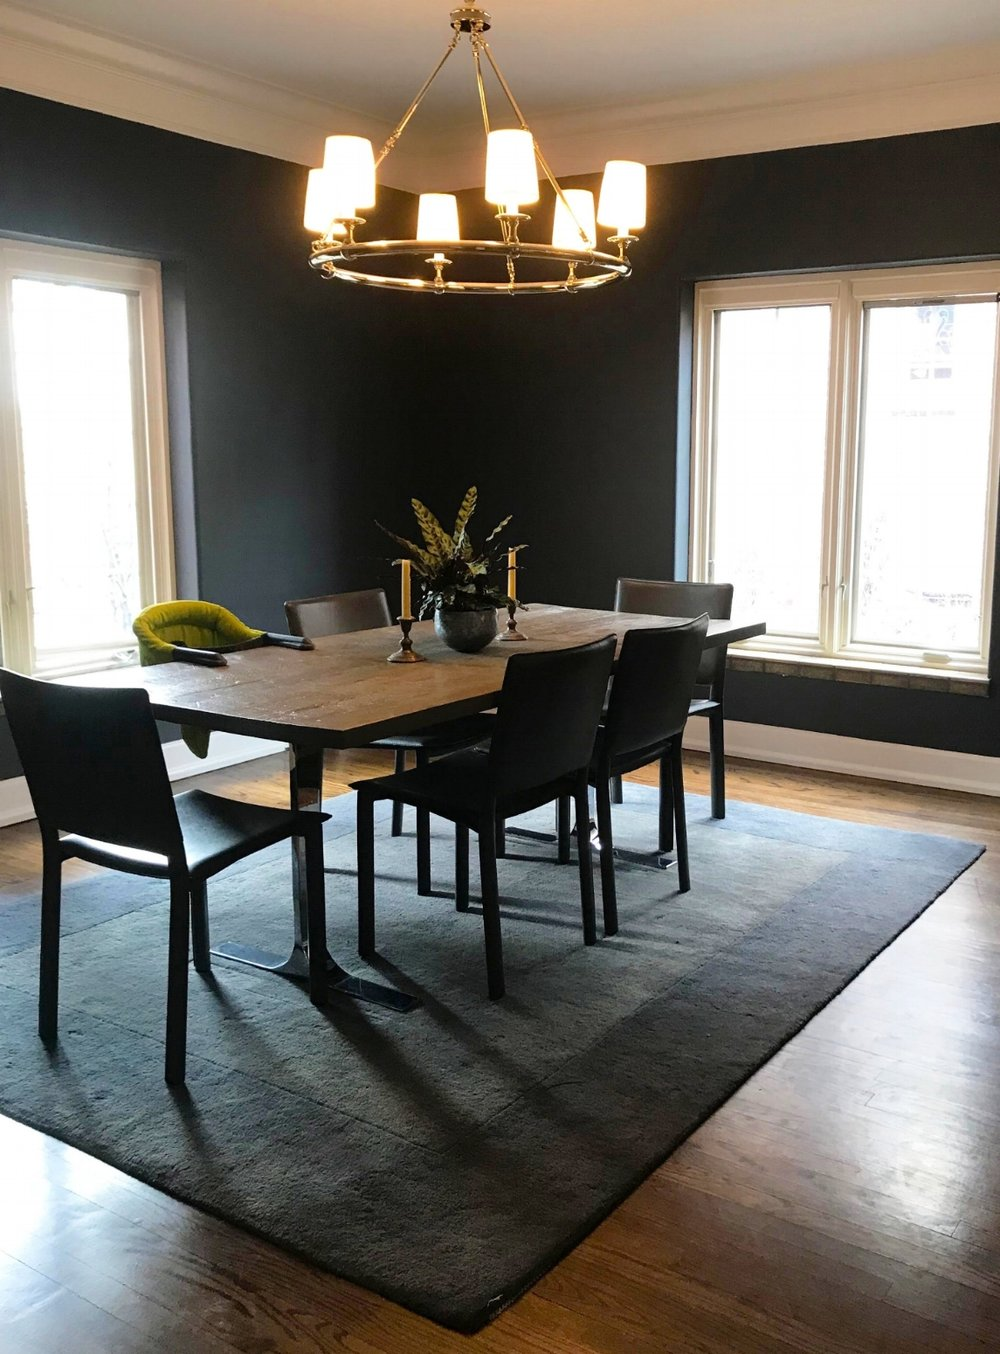 Deciding On A New Dining Table Can Be More Difficult Than It Sounds Which One Is Right For Your Space From Rectangular To Square And Even Round There